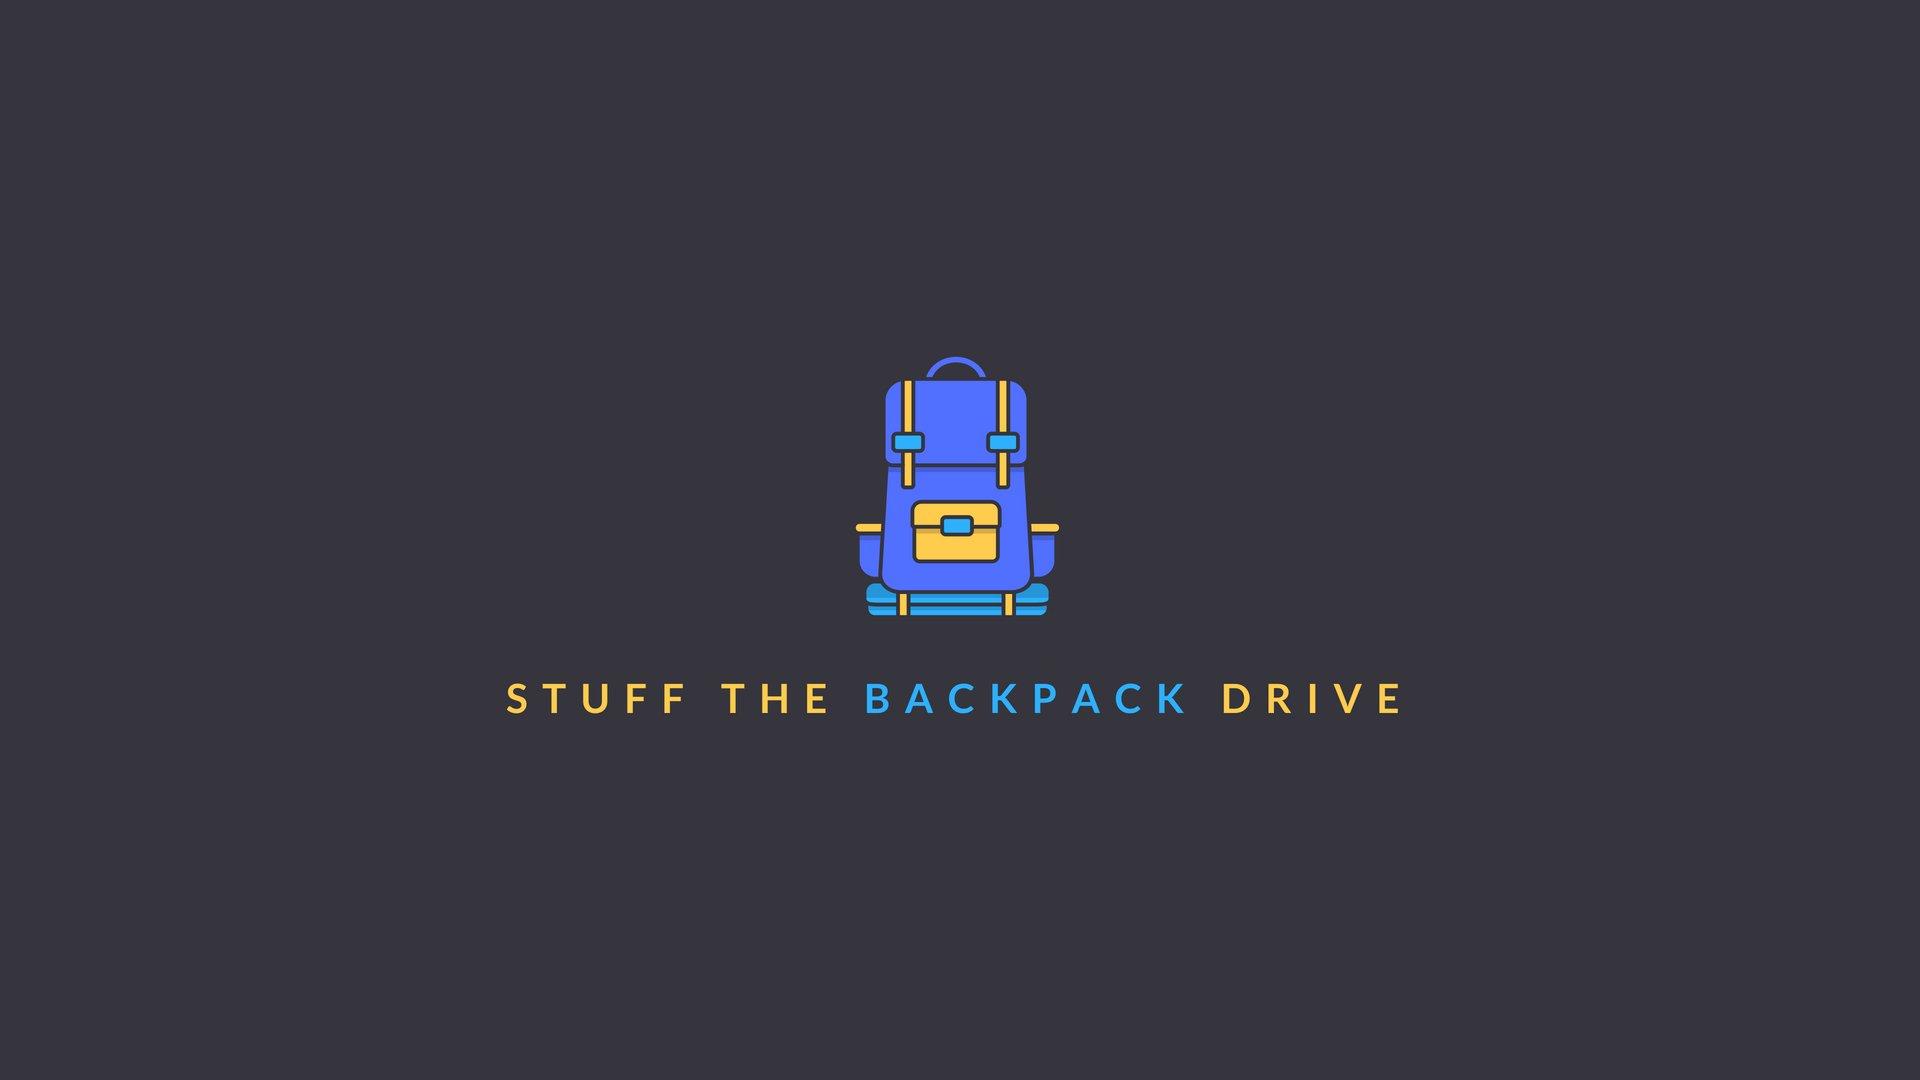 Stuff the Backpack Campaign